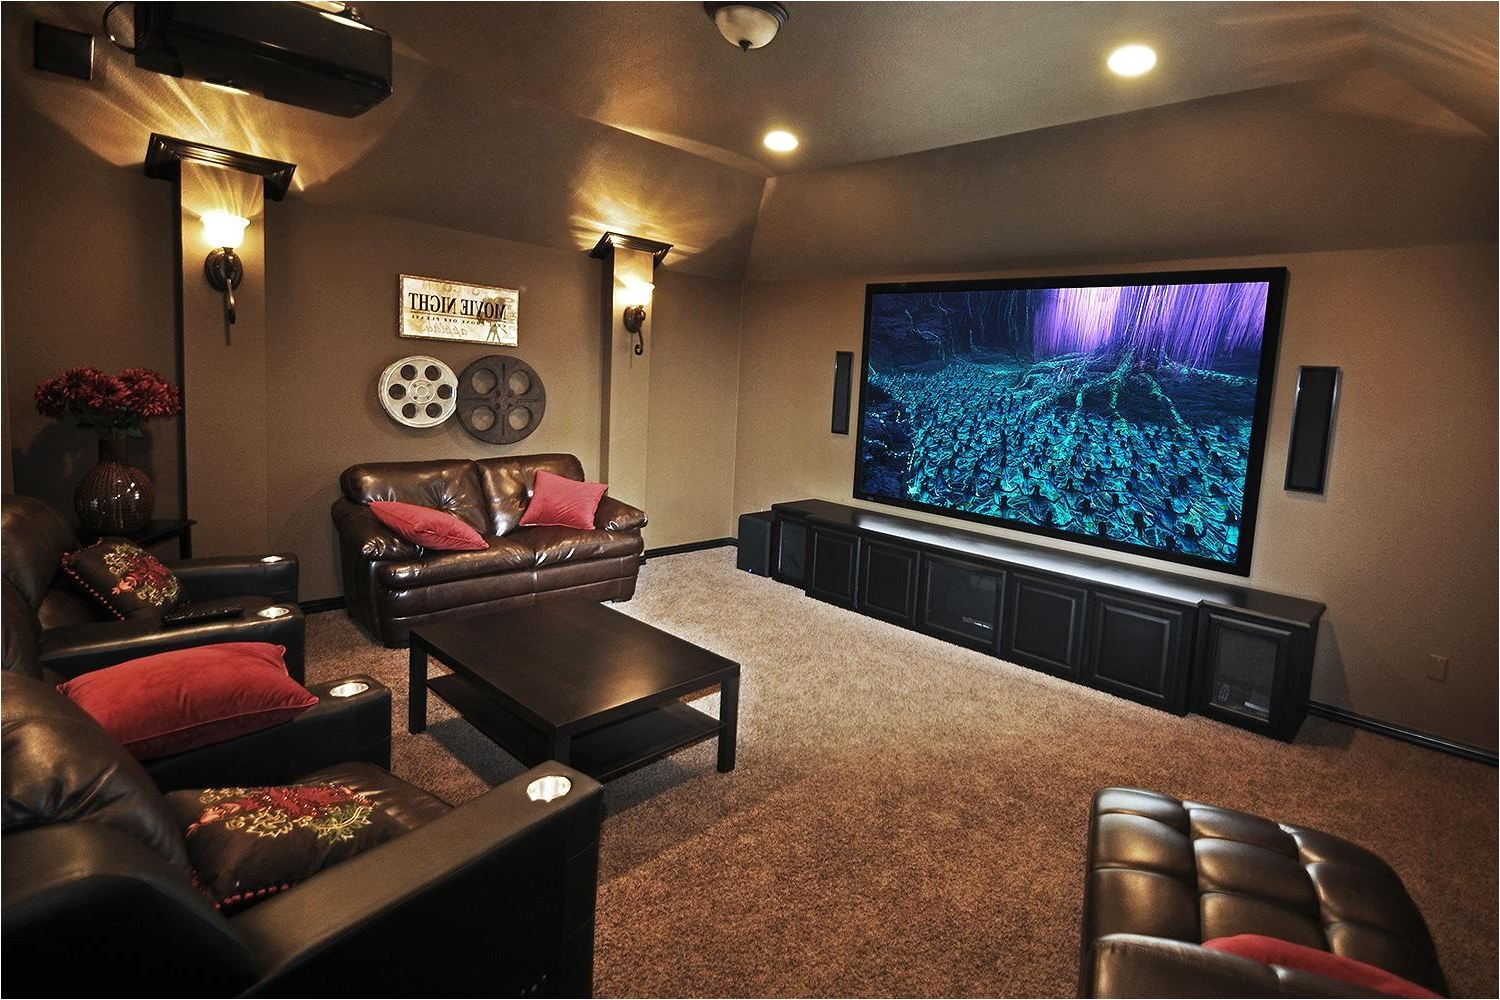 small home theater room ideas red color curve shape sofas rectangle shape bars table long table bar interior brown wall color cone wall mount lamp